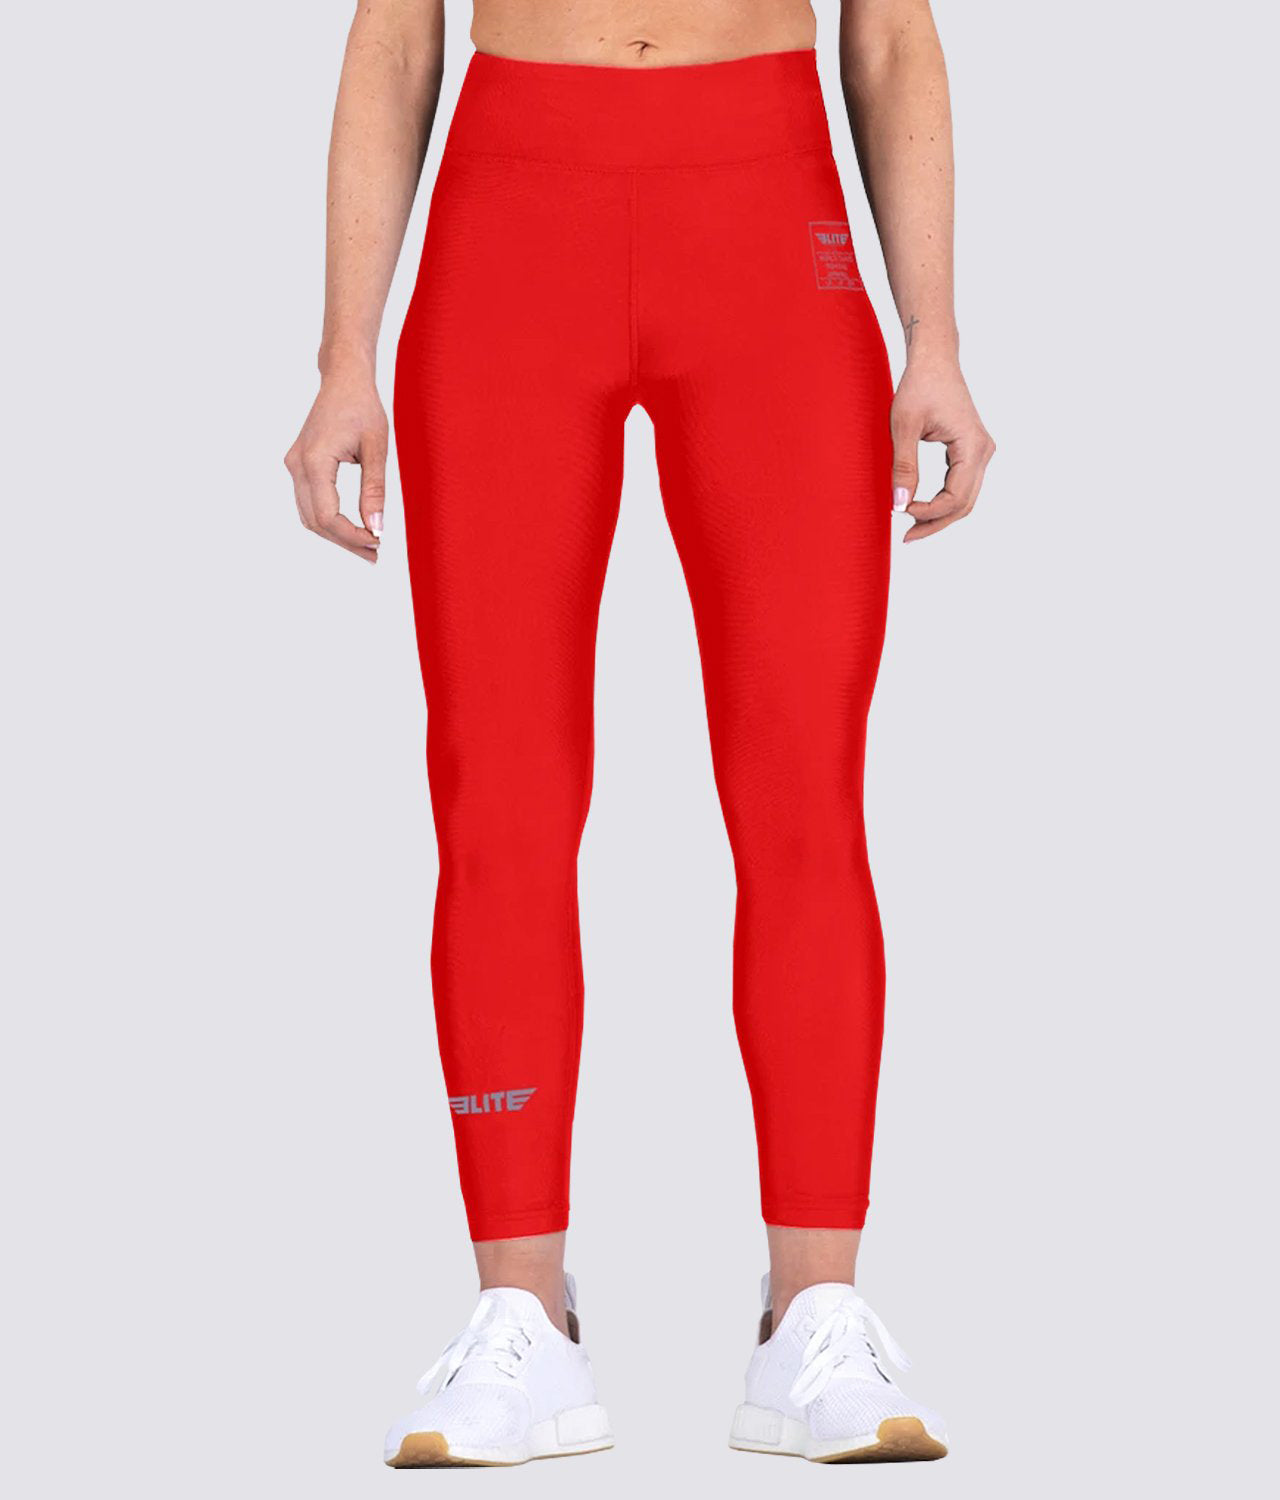 Elite Sports Red Women Compression Judo Spat Pants